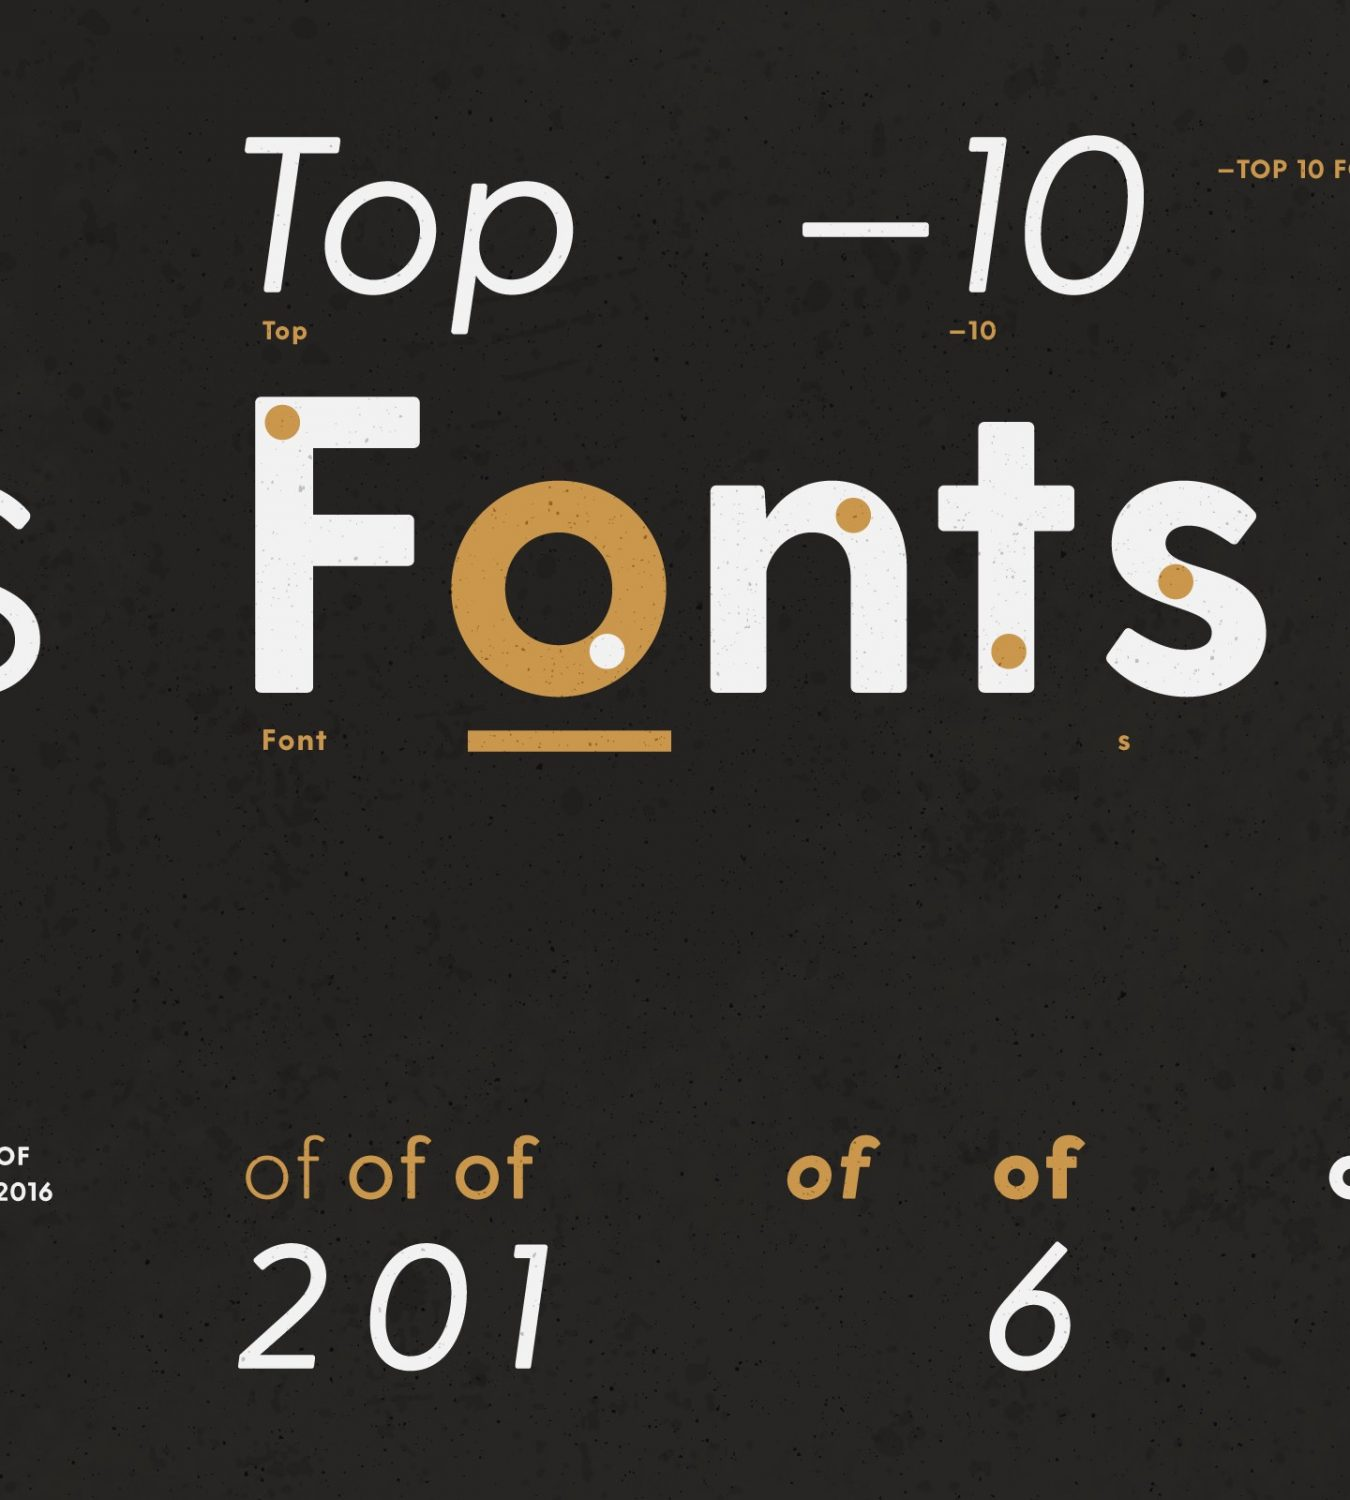 Top 10 Fonts of 2016